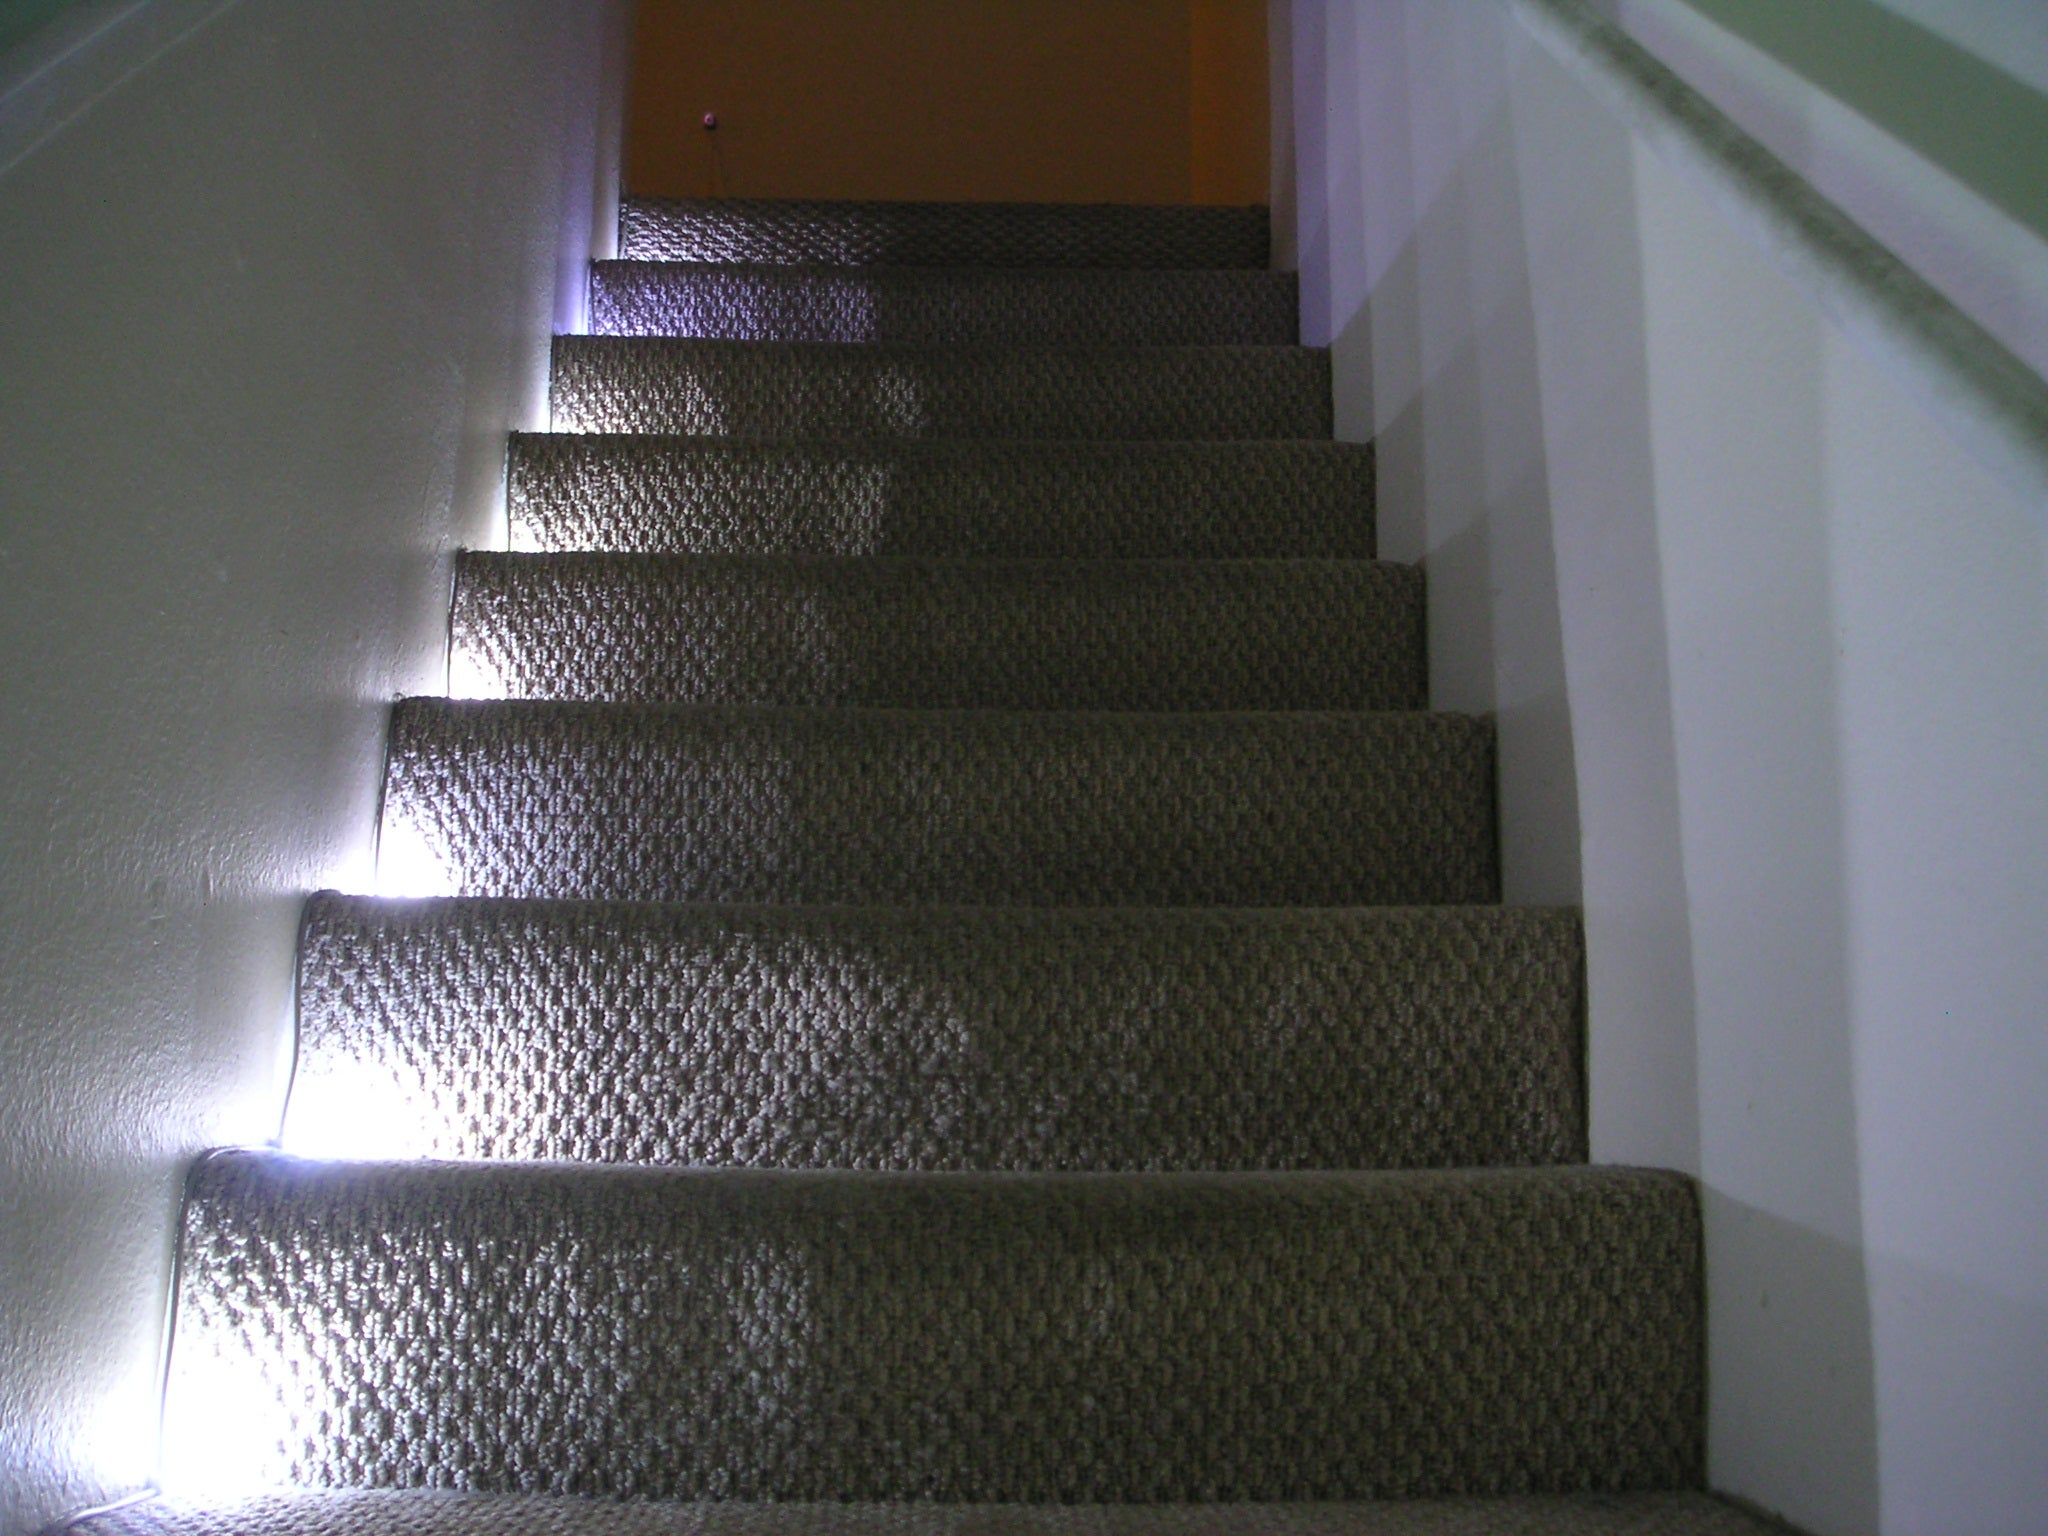 Stairway LED Lighting With IR Trip Sensor : 9 Steps - Instructables